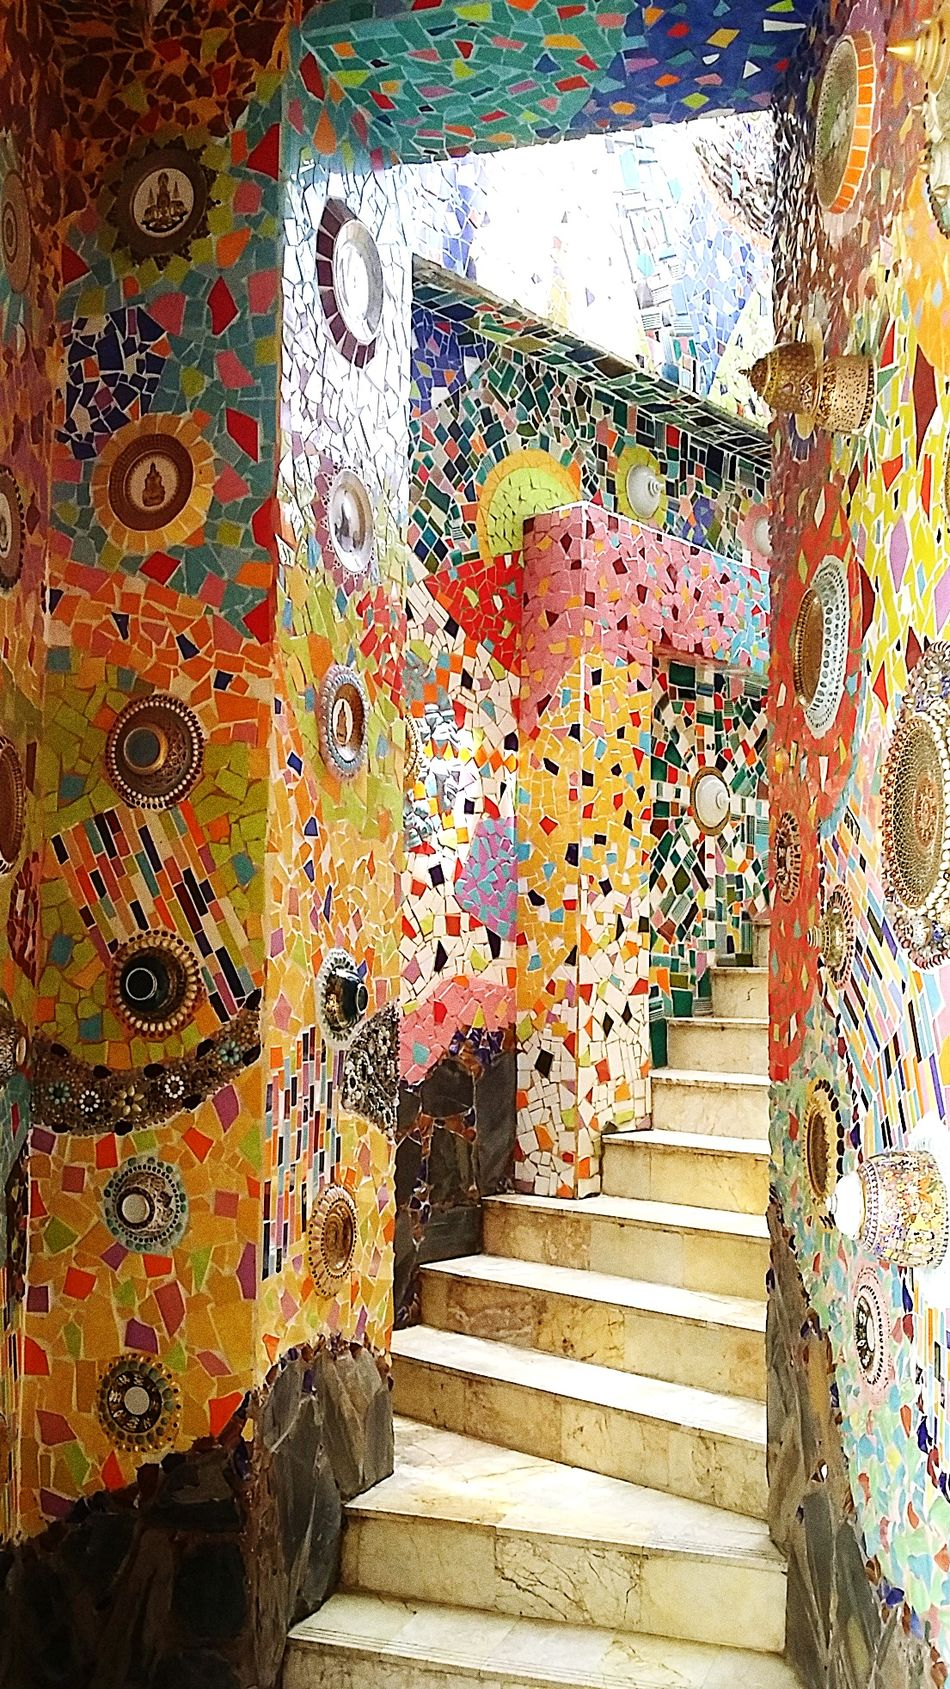 EyeEm Diversity Staircase Stair Stairway To Heaven Stairs To Nowhere Stair Mosaic Mosaic Art Mosaic Stairs Multi Colored Architecture Sunlight